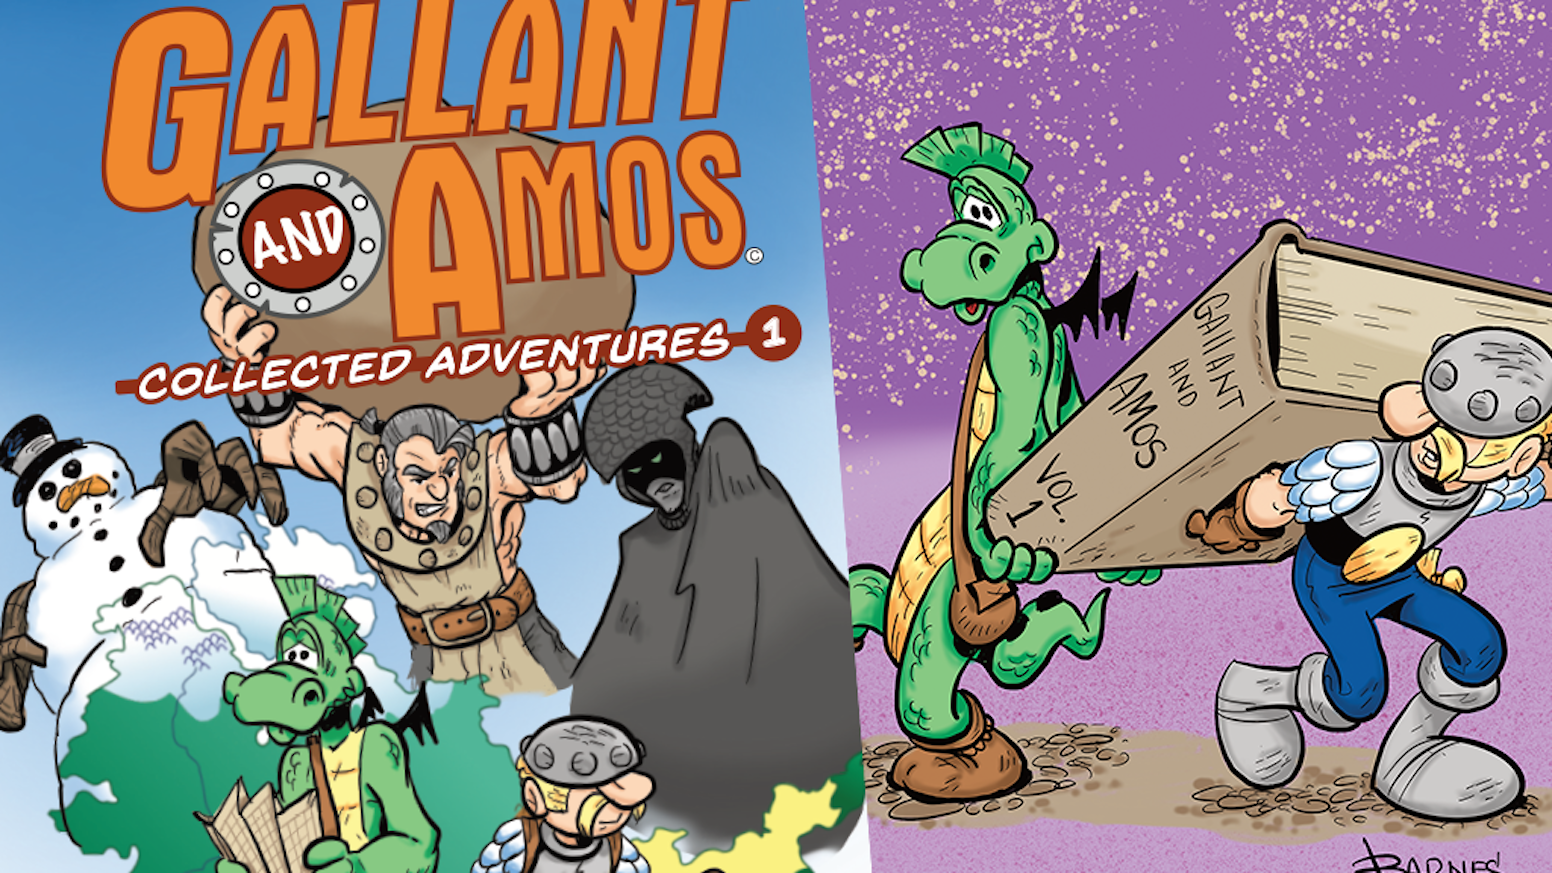 The first collected works of Gallant & Amos from creator Rob Barnes, collating the first 4 issues released in 2018 and much more!